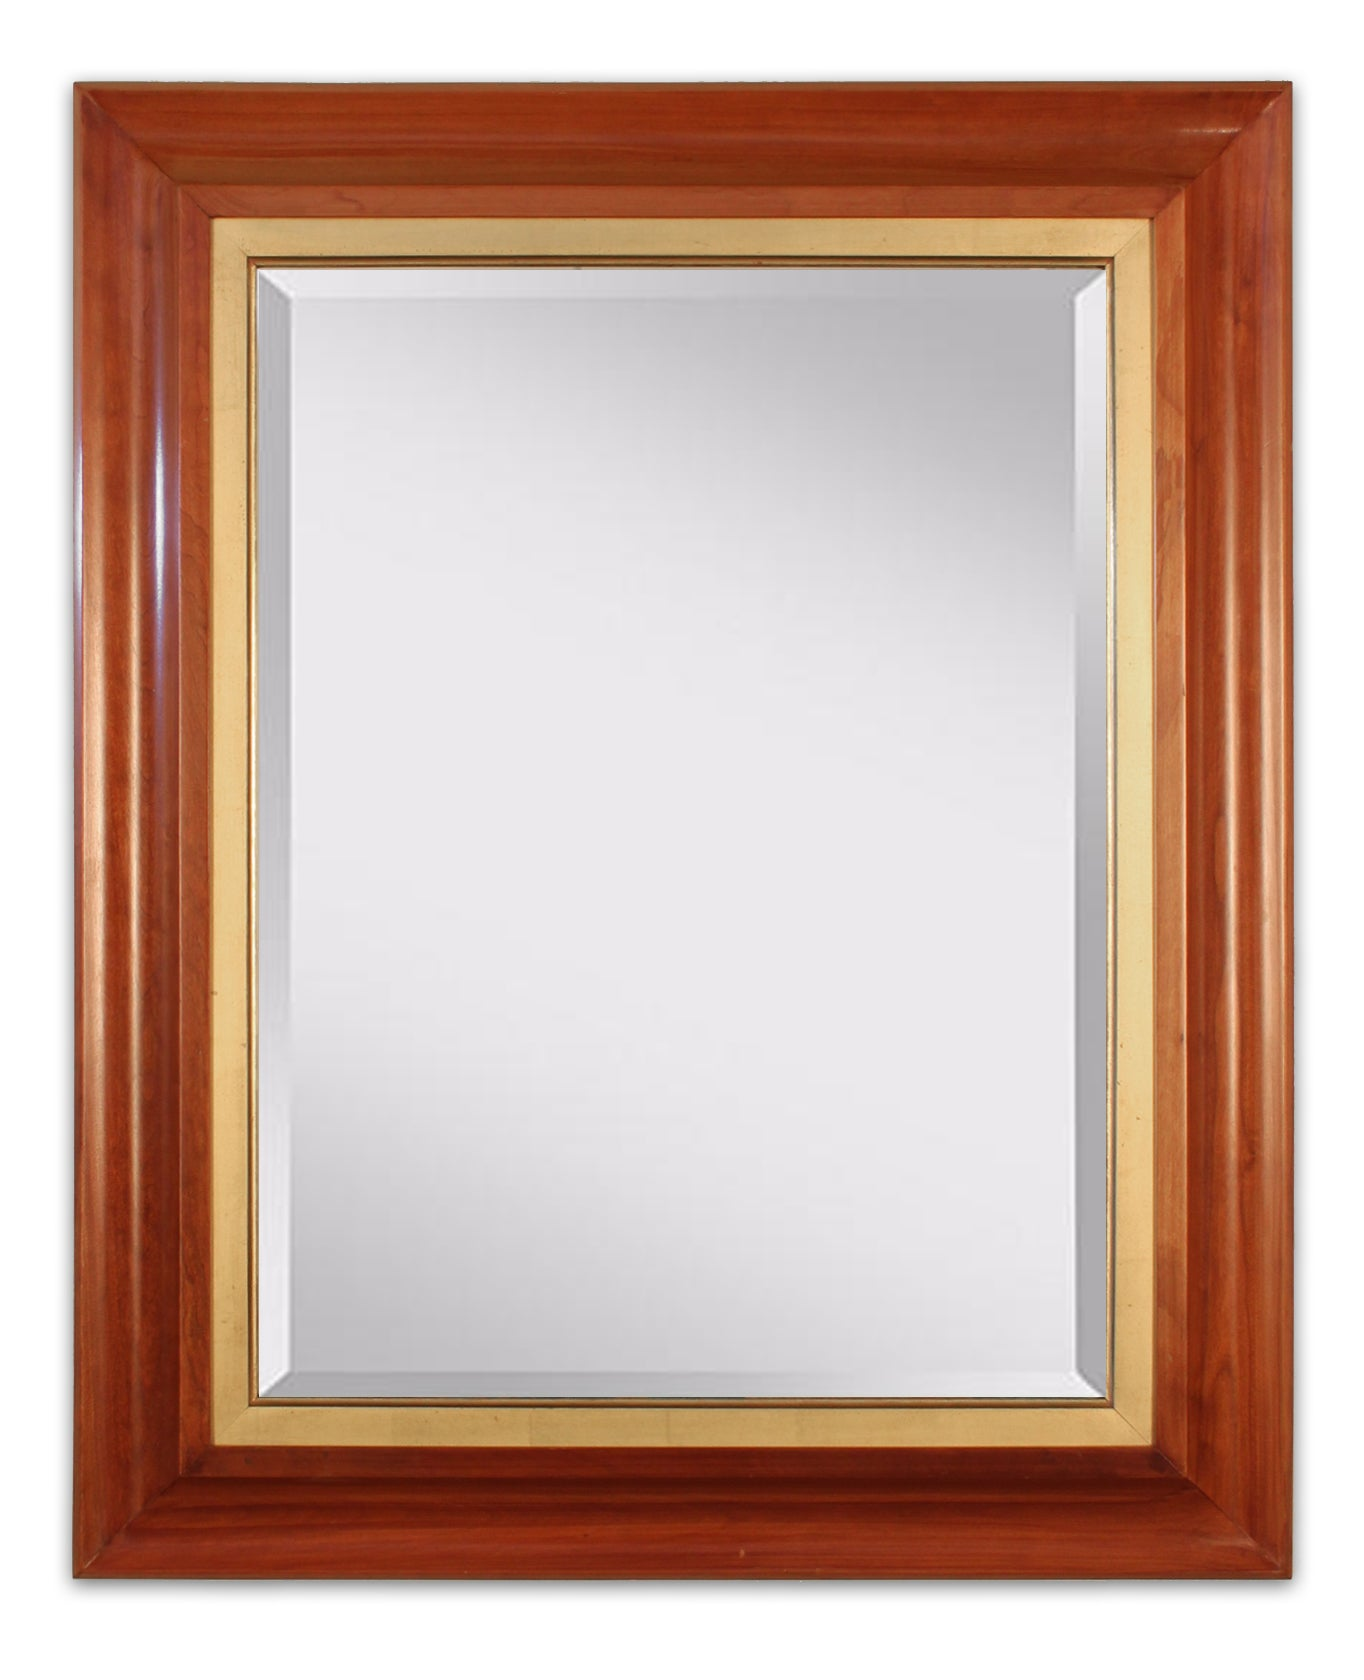 Mahogany High Front with 22K Gold Liner Mirror